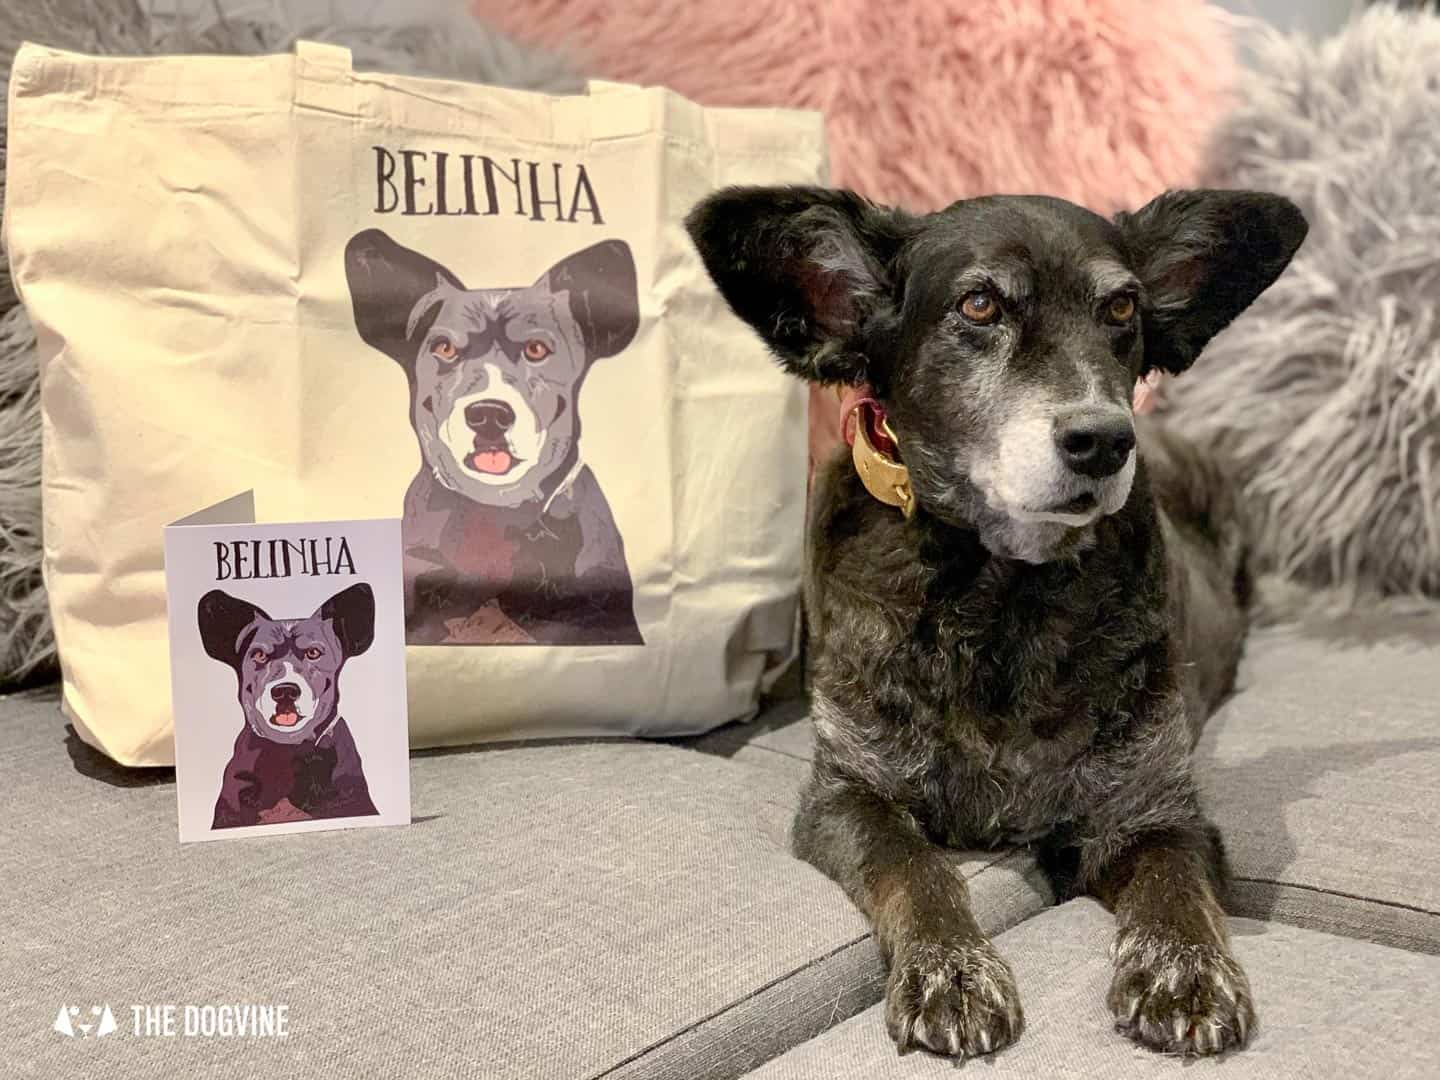 The Best Personalised Pet Gifts For Dog Owners - Peture Perfect